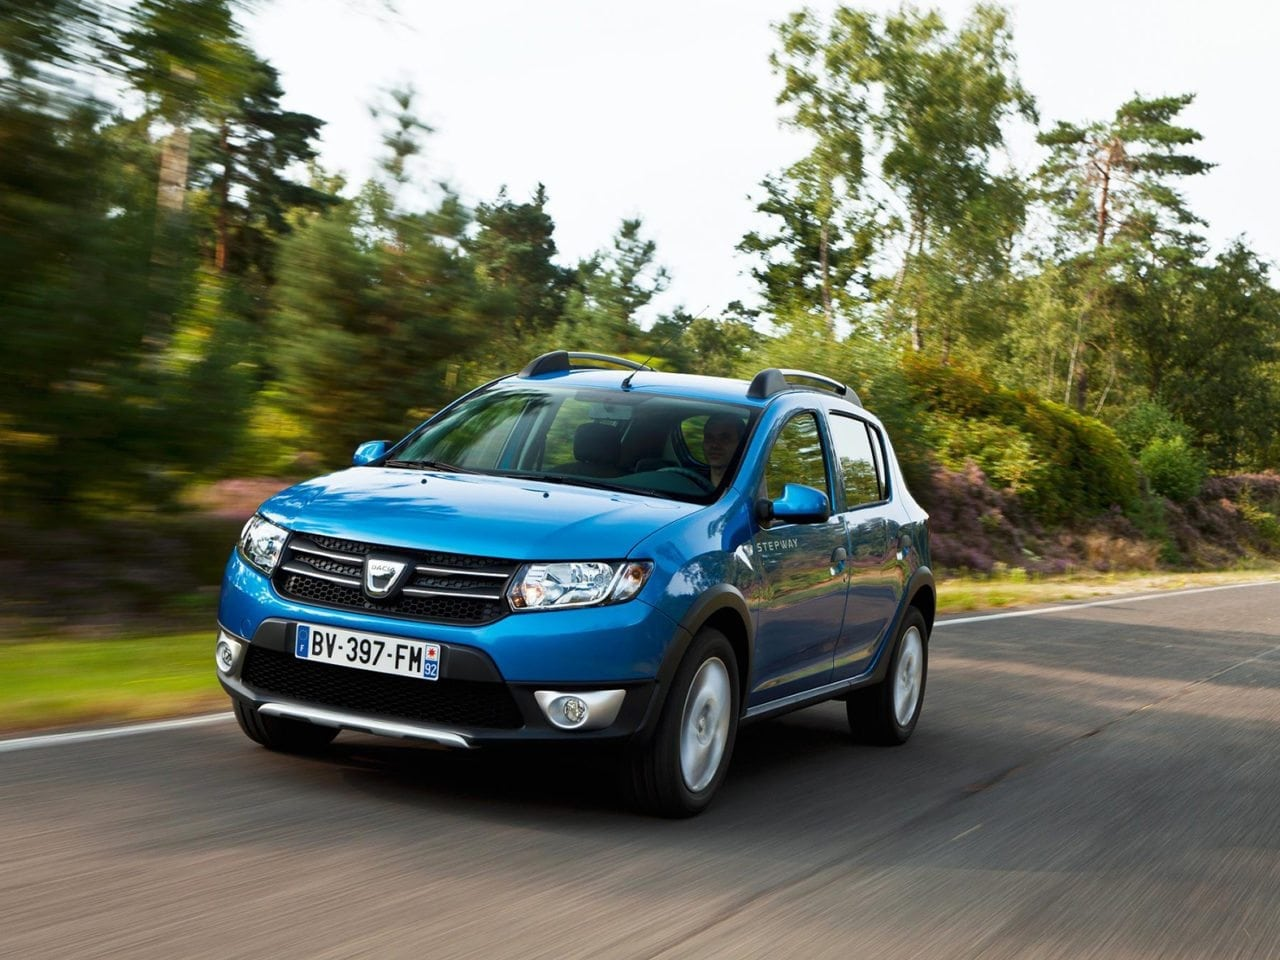 Dacia Sandero Stepway And Pictures to pin on Pinterest